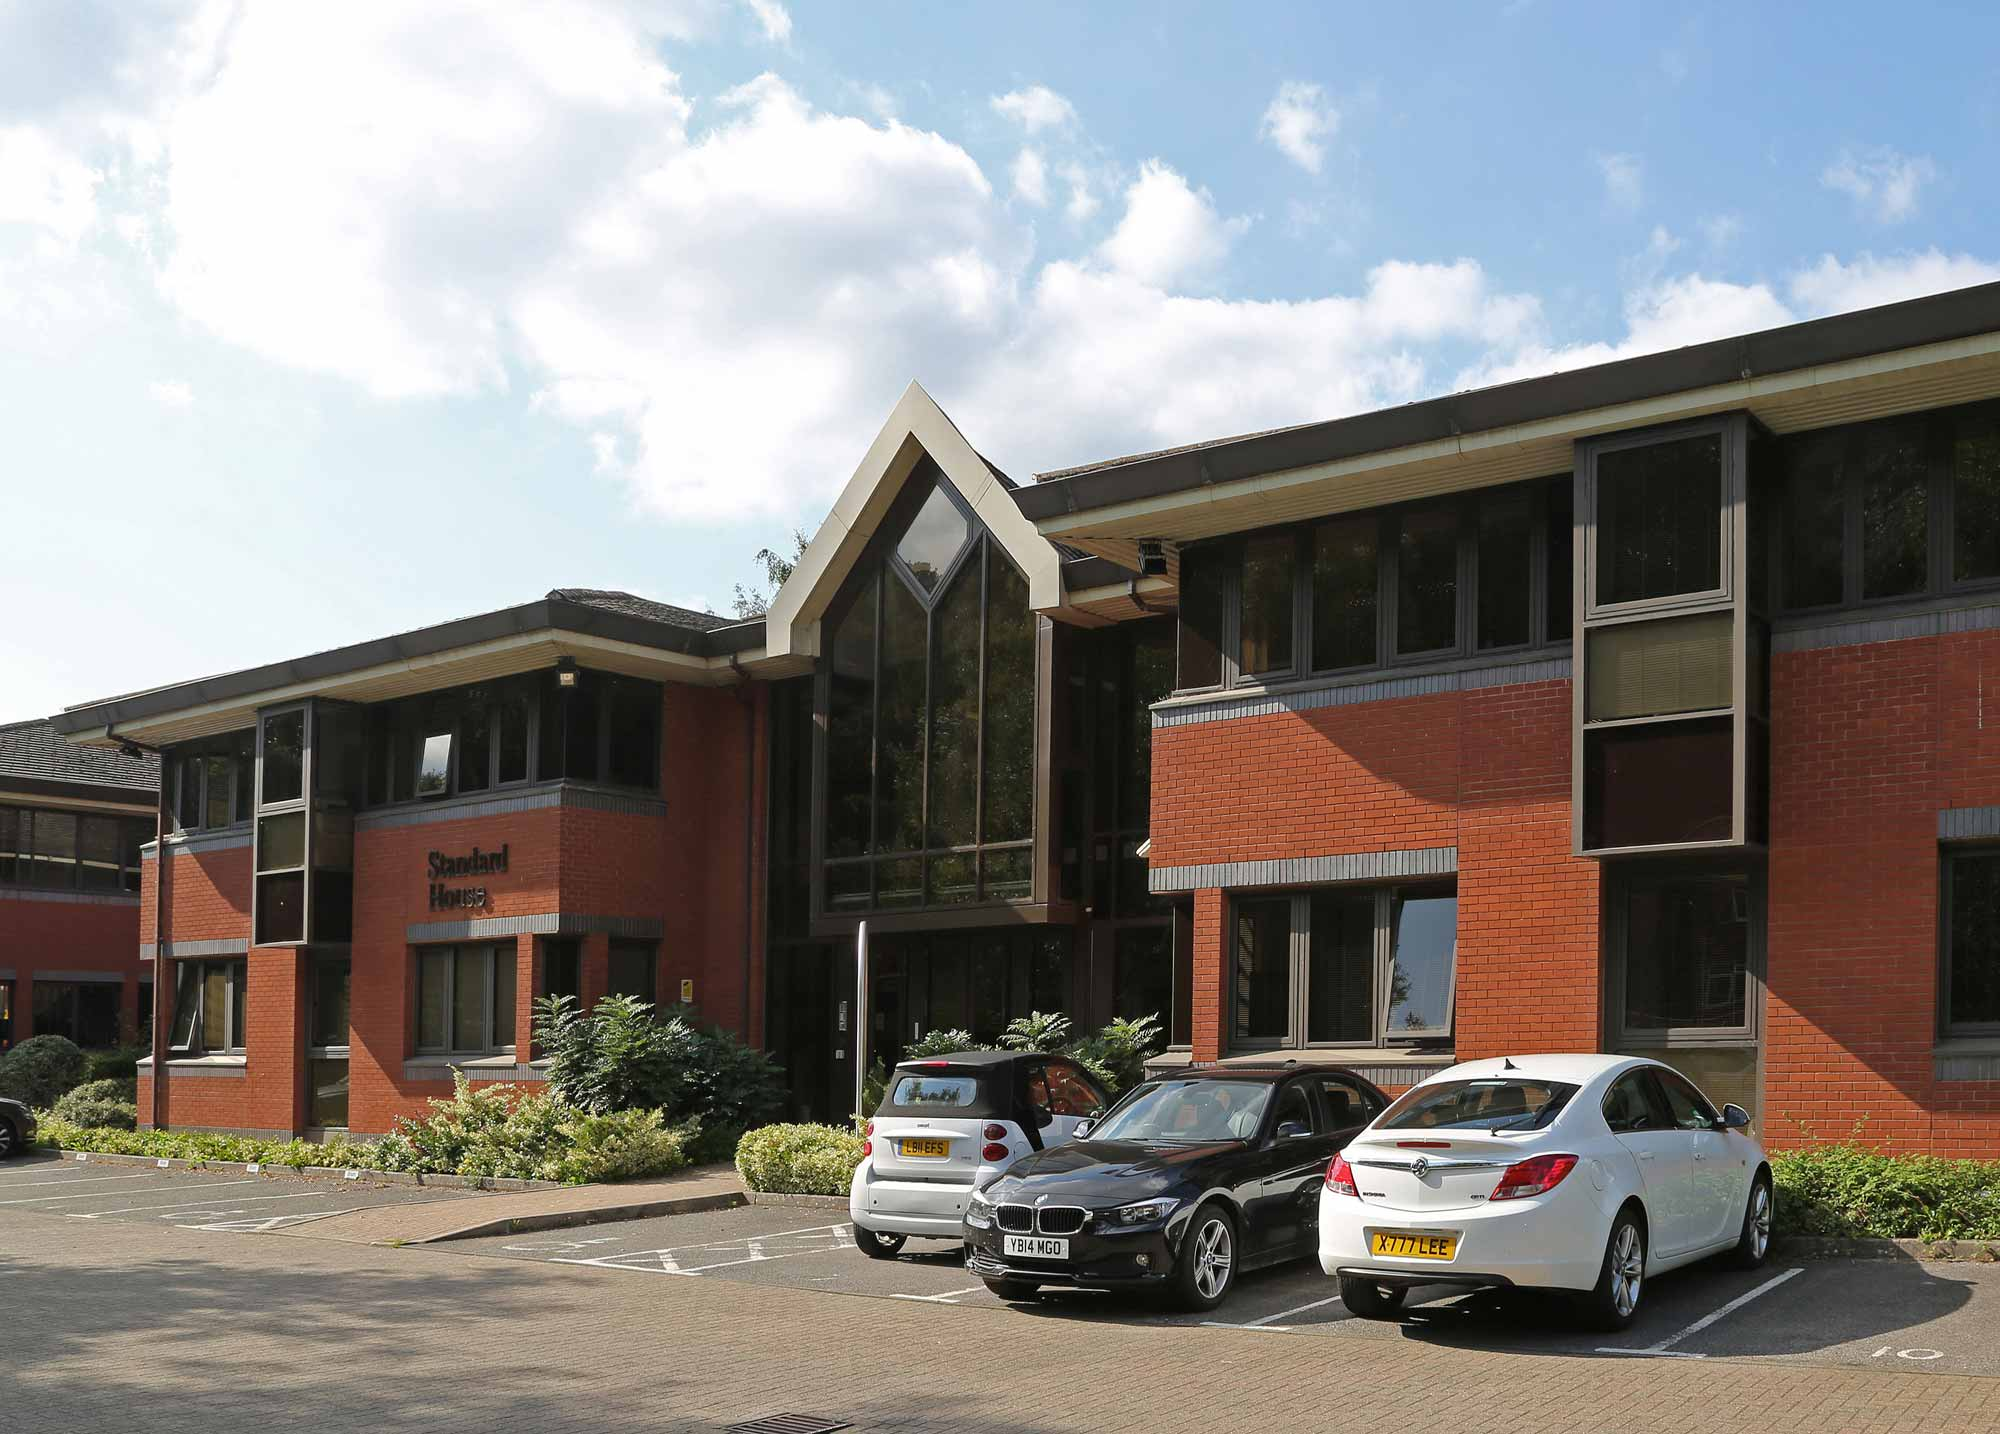 Standard House, Godalming – Multi-let Office Building